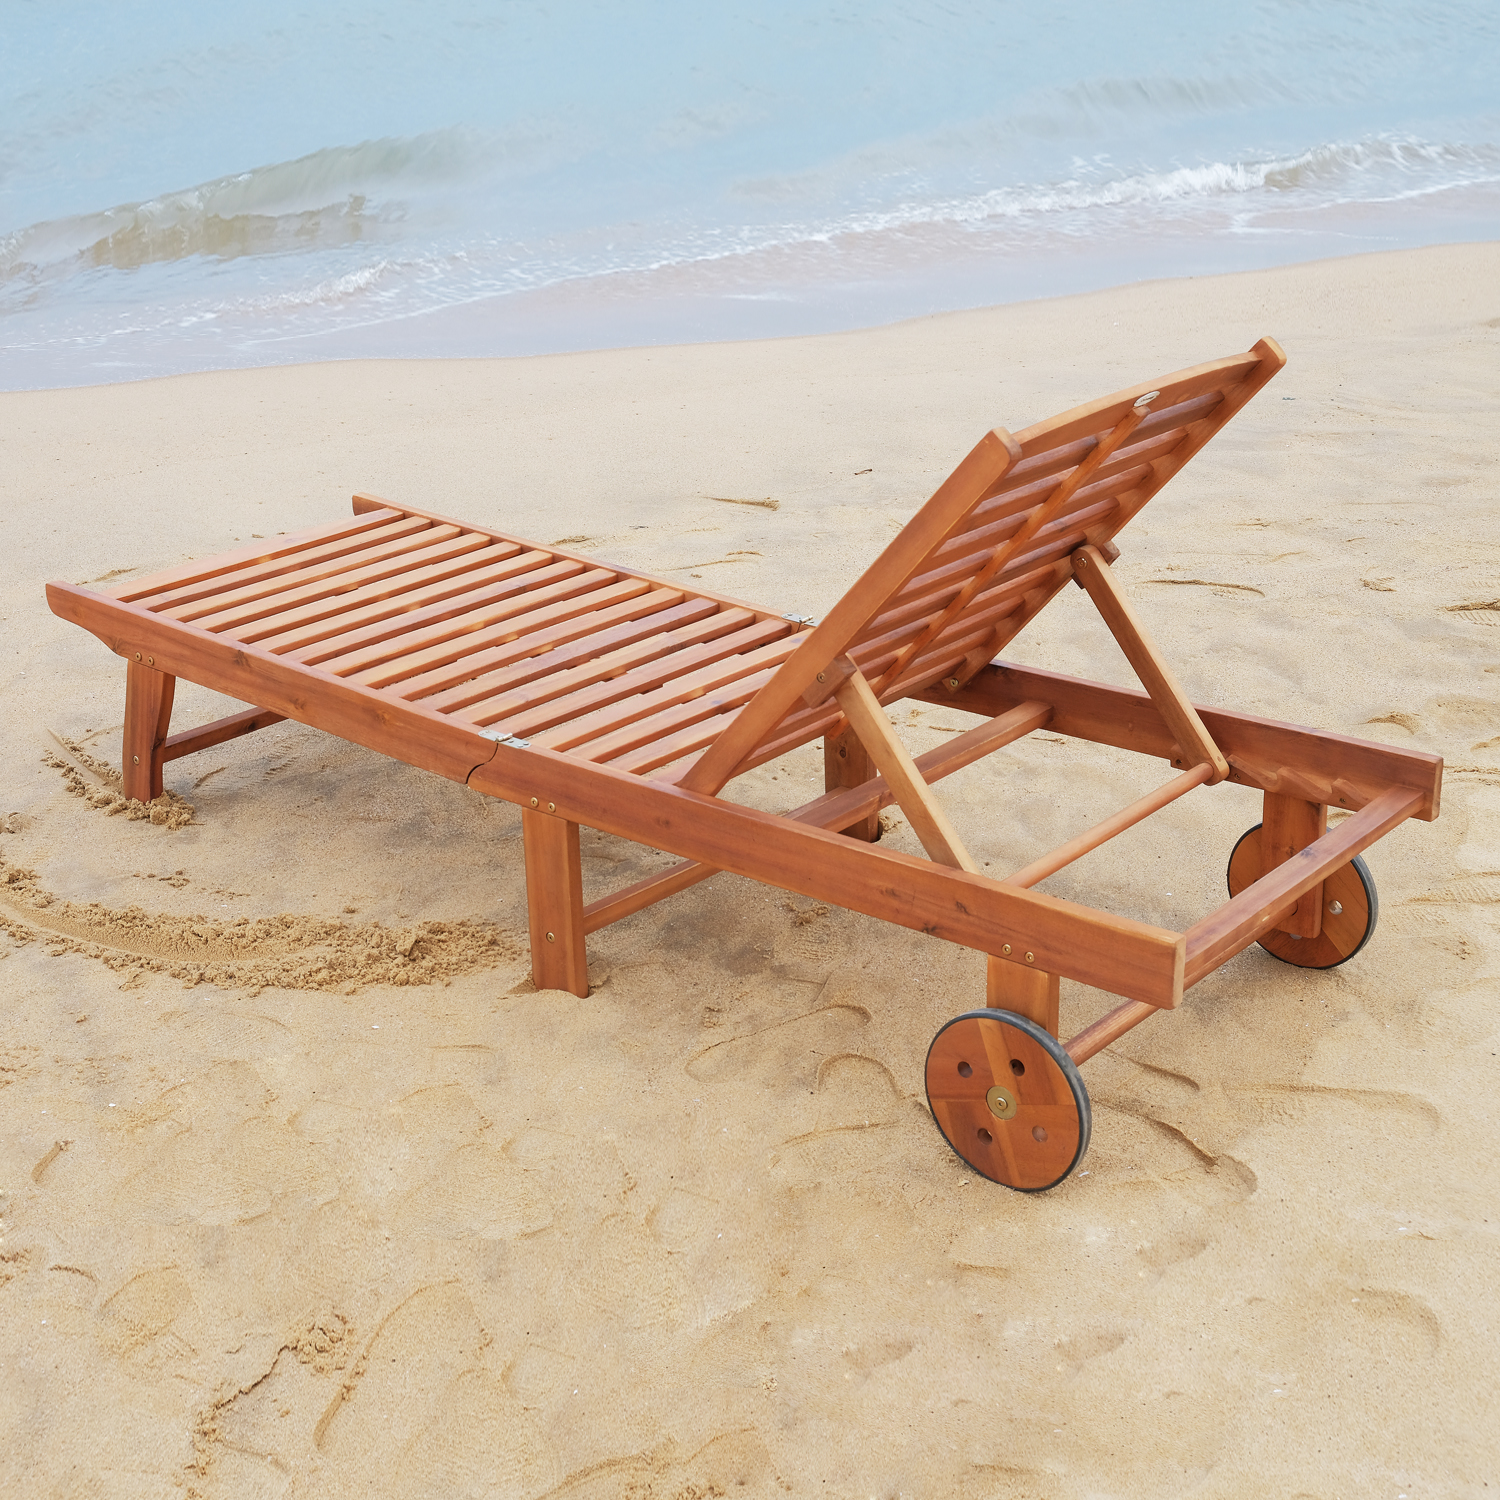 Wood Outdoor Folding Chaise Lounge Chair Beach Poolside ...